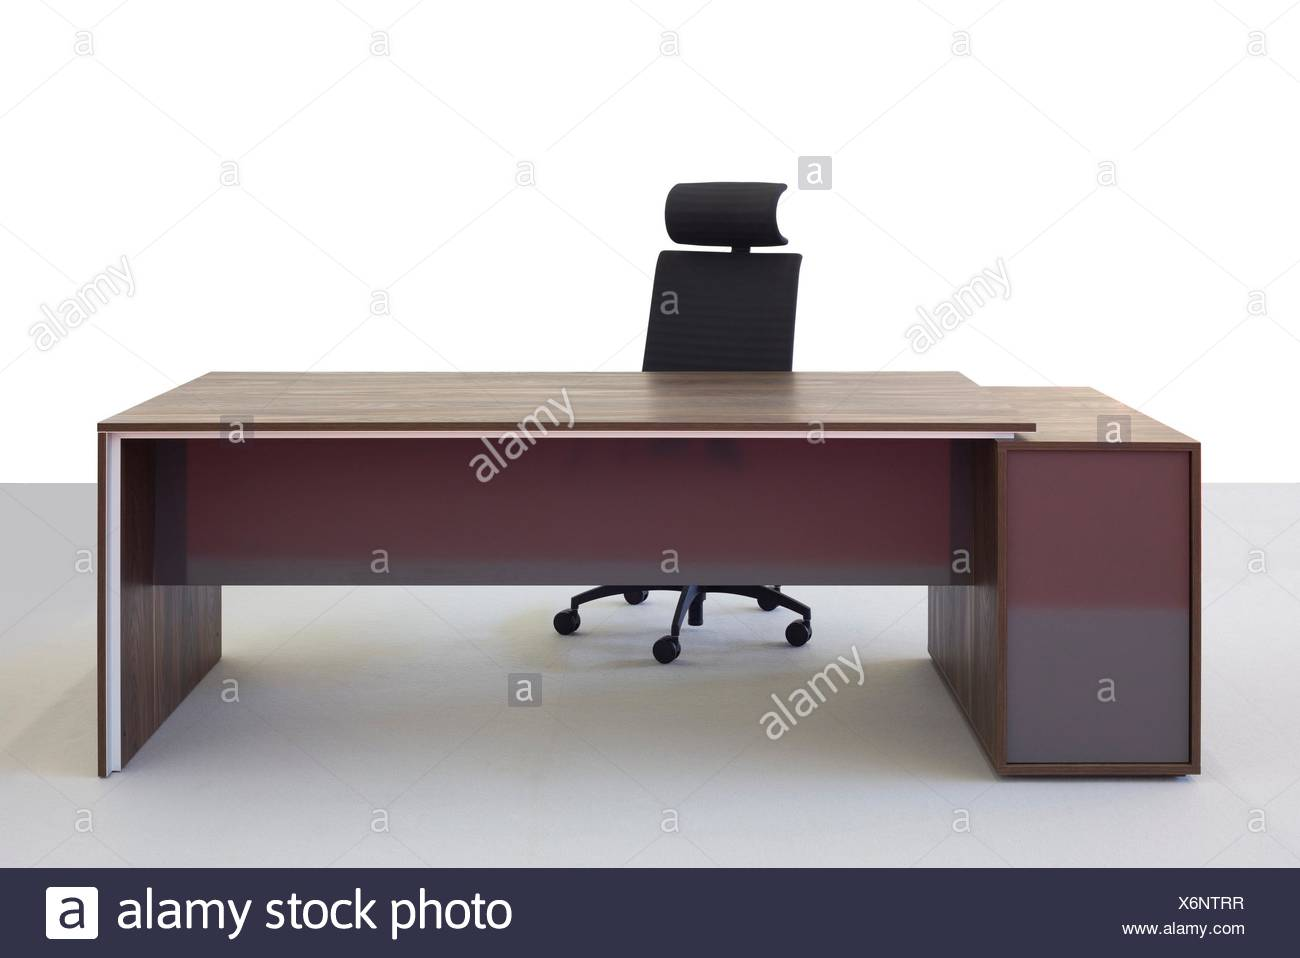 Empty Office Desk And Chair Isolated On White Background Stock Photo Alamy